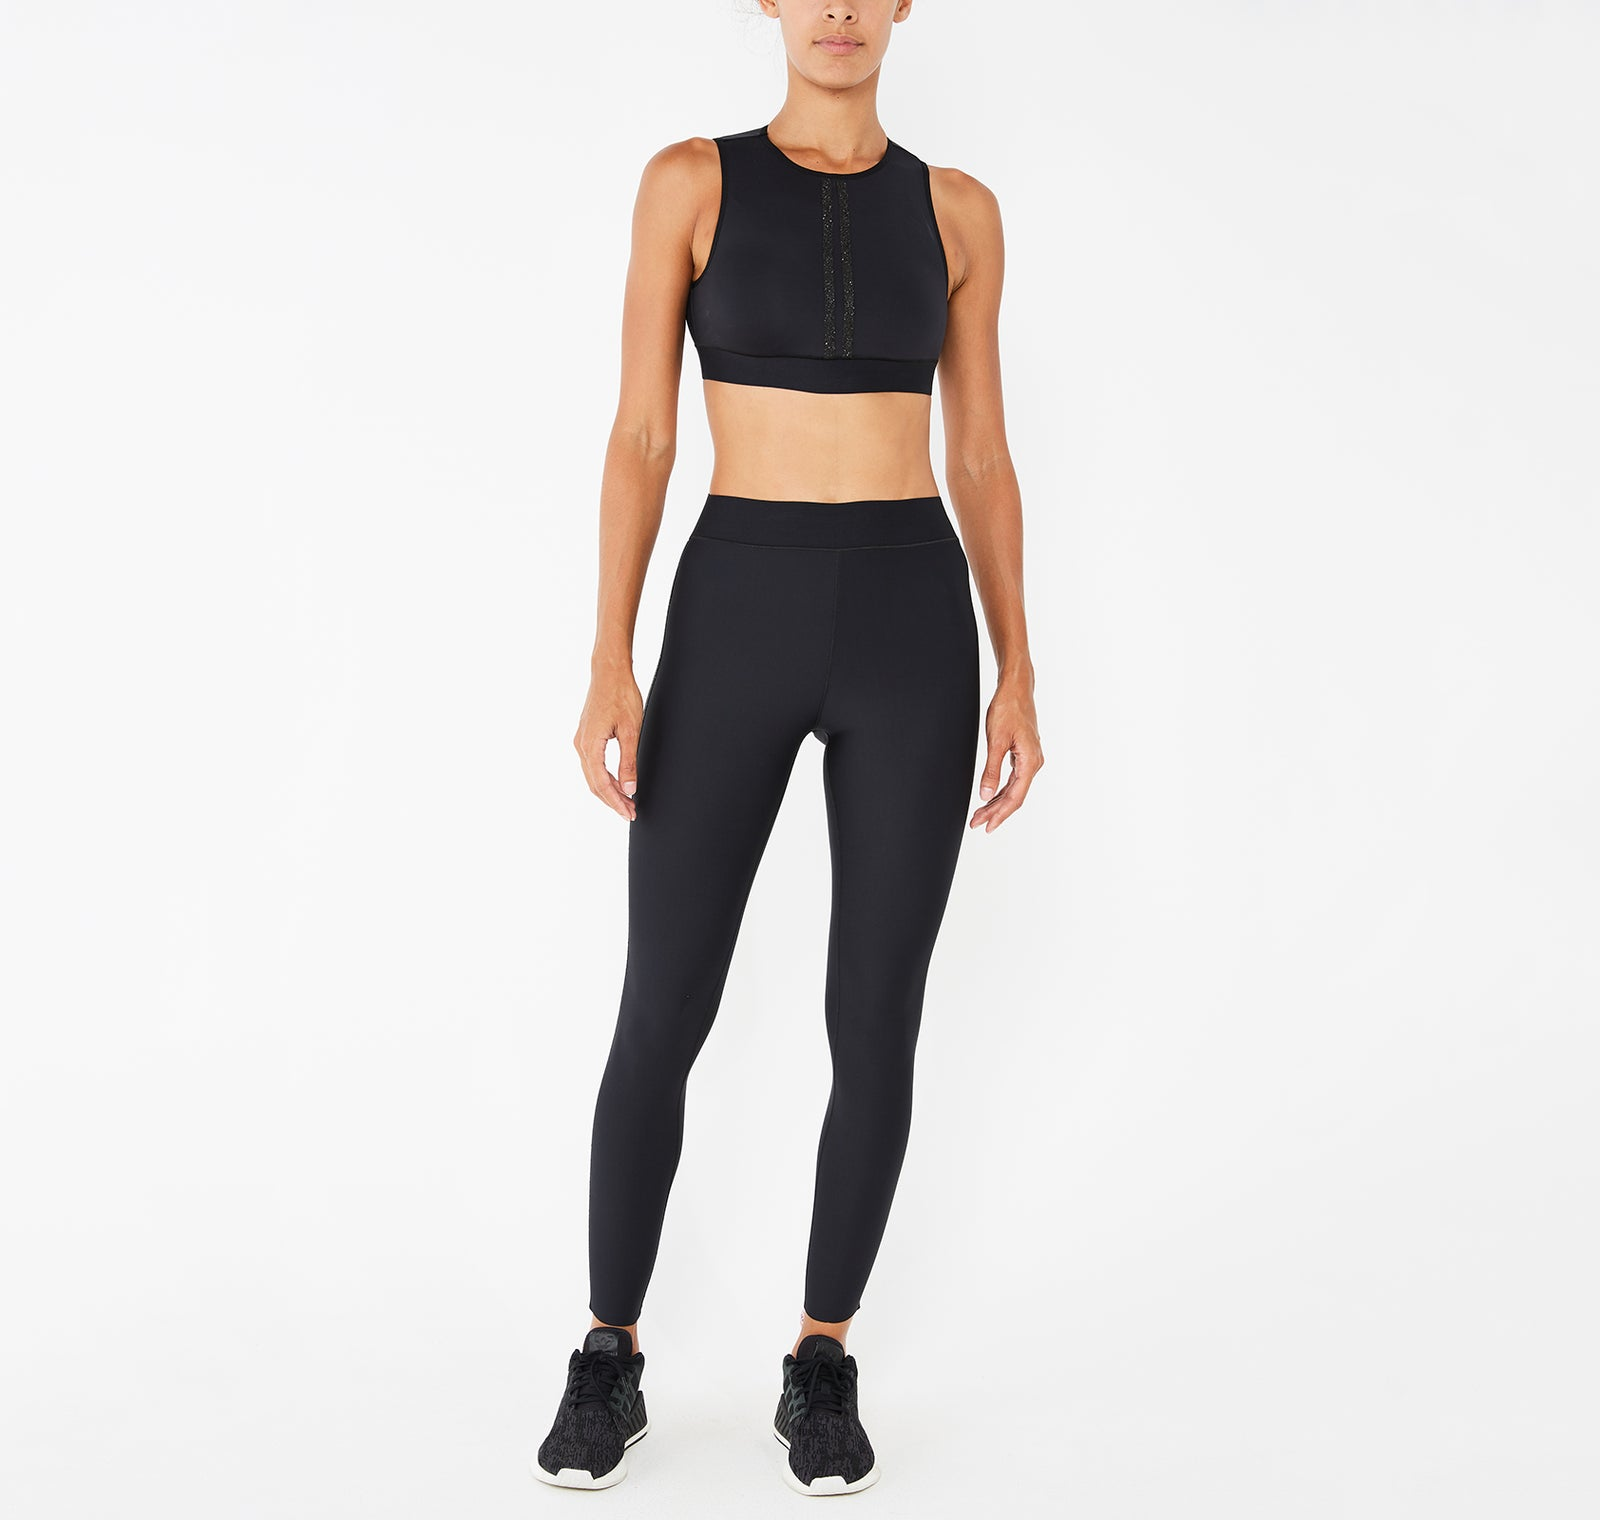 Level Fit Parallel Swarovski® Crop Top